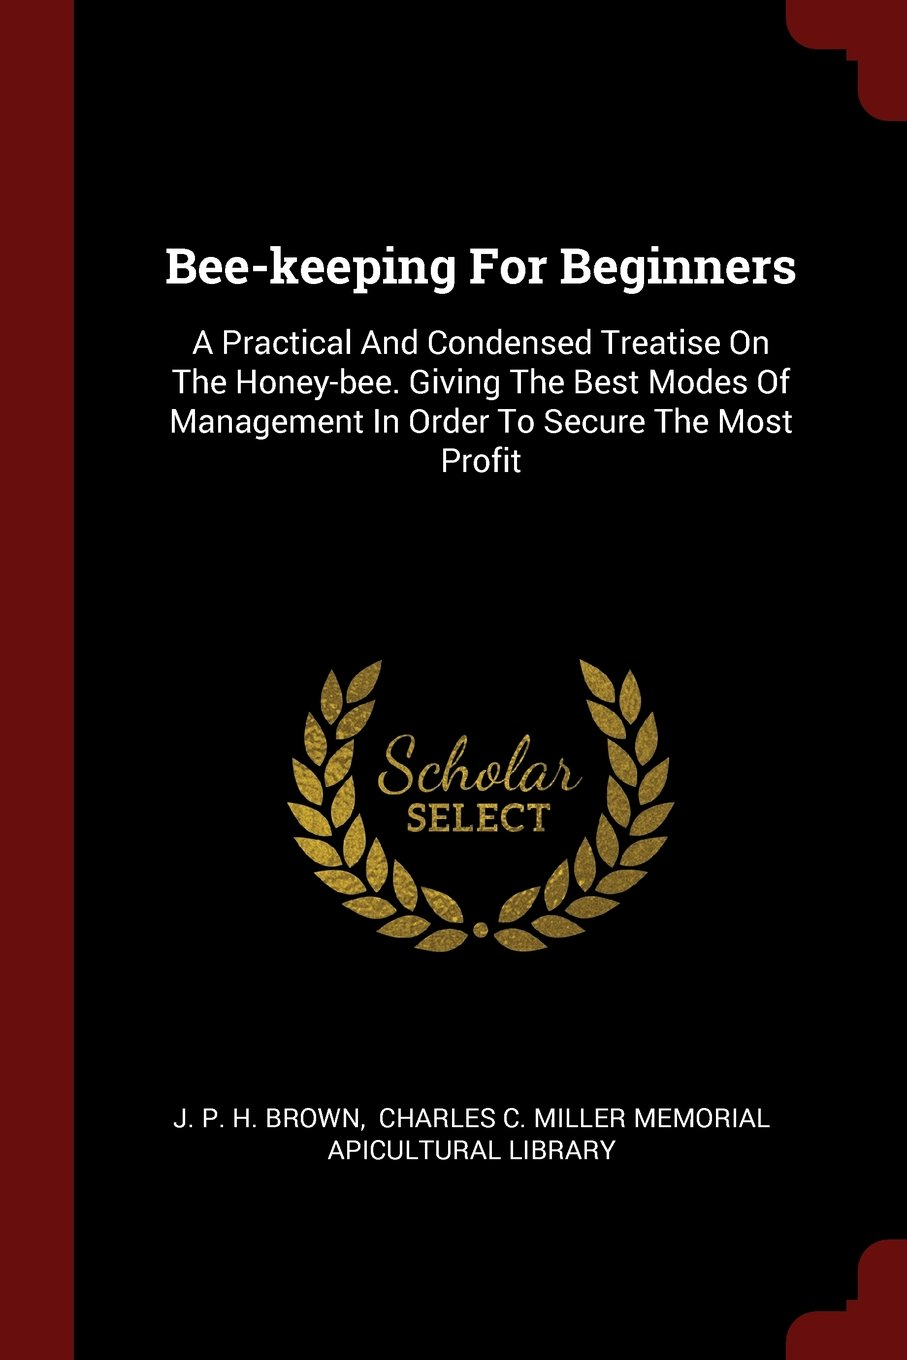 Bee-keeping For Beginners: A Practical And Condensed Treatise On The Honey-bee. Giving The Best Modes Of Management In Order To Secure The Most Profit pdf